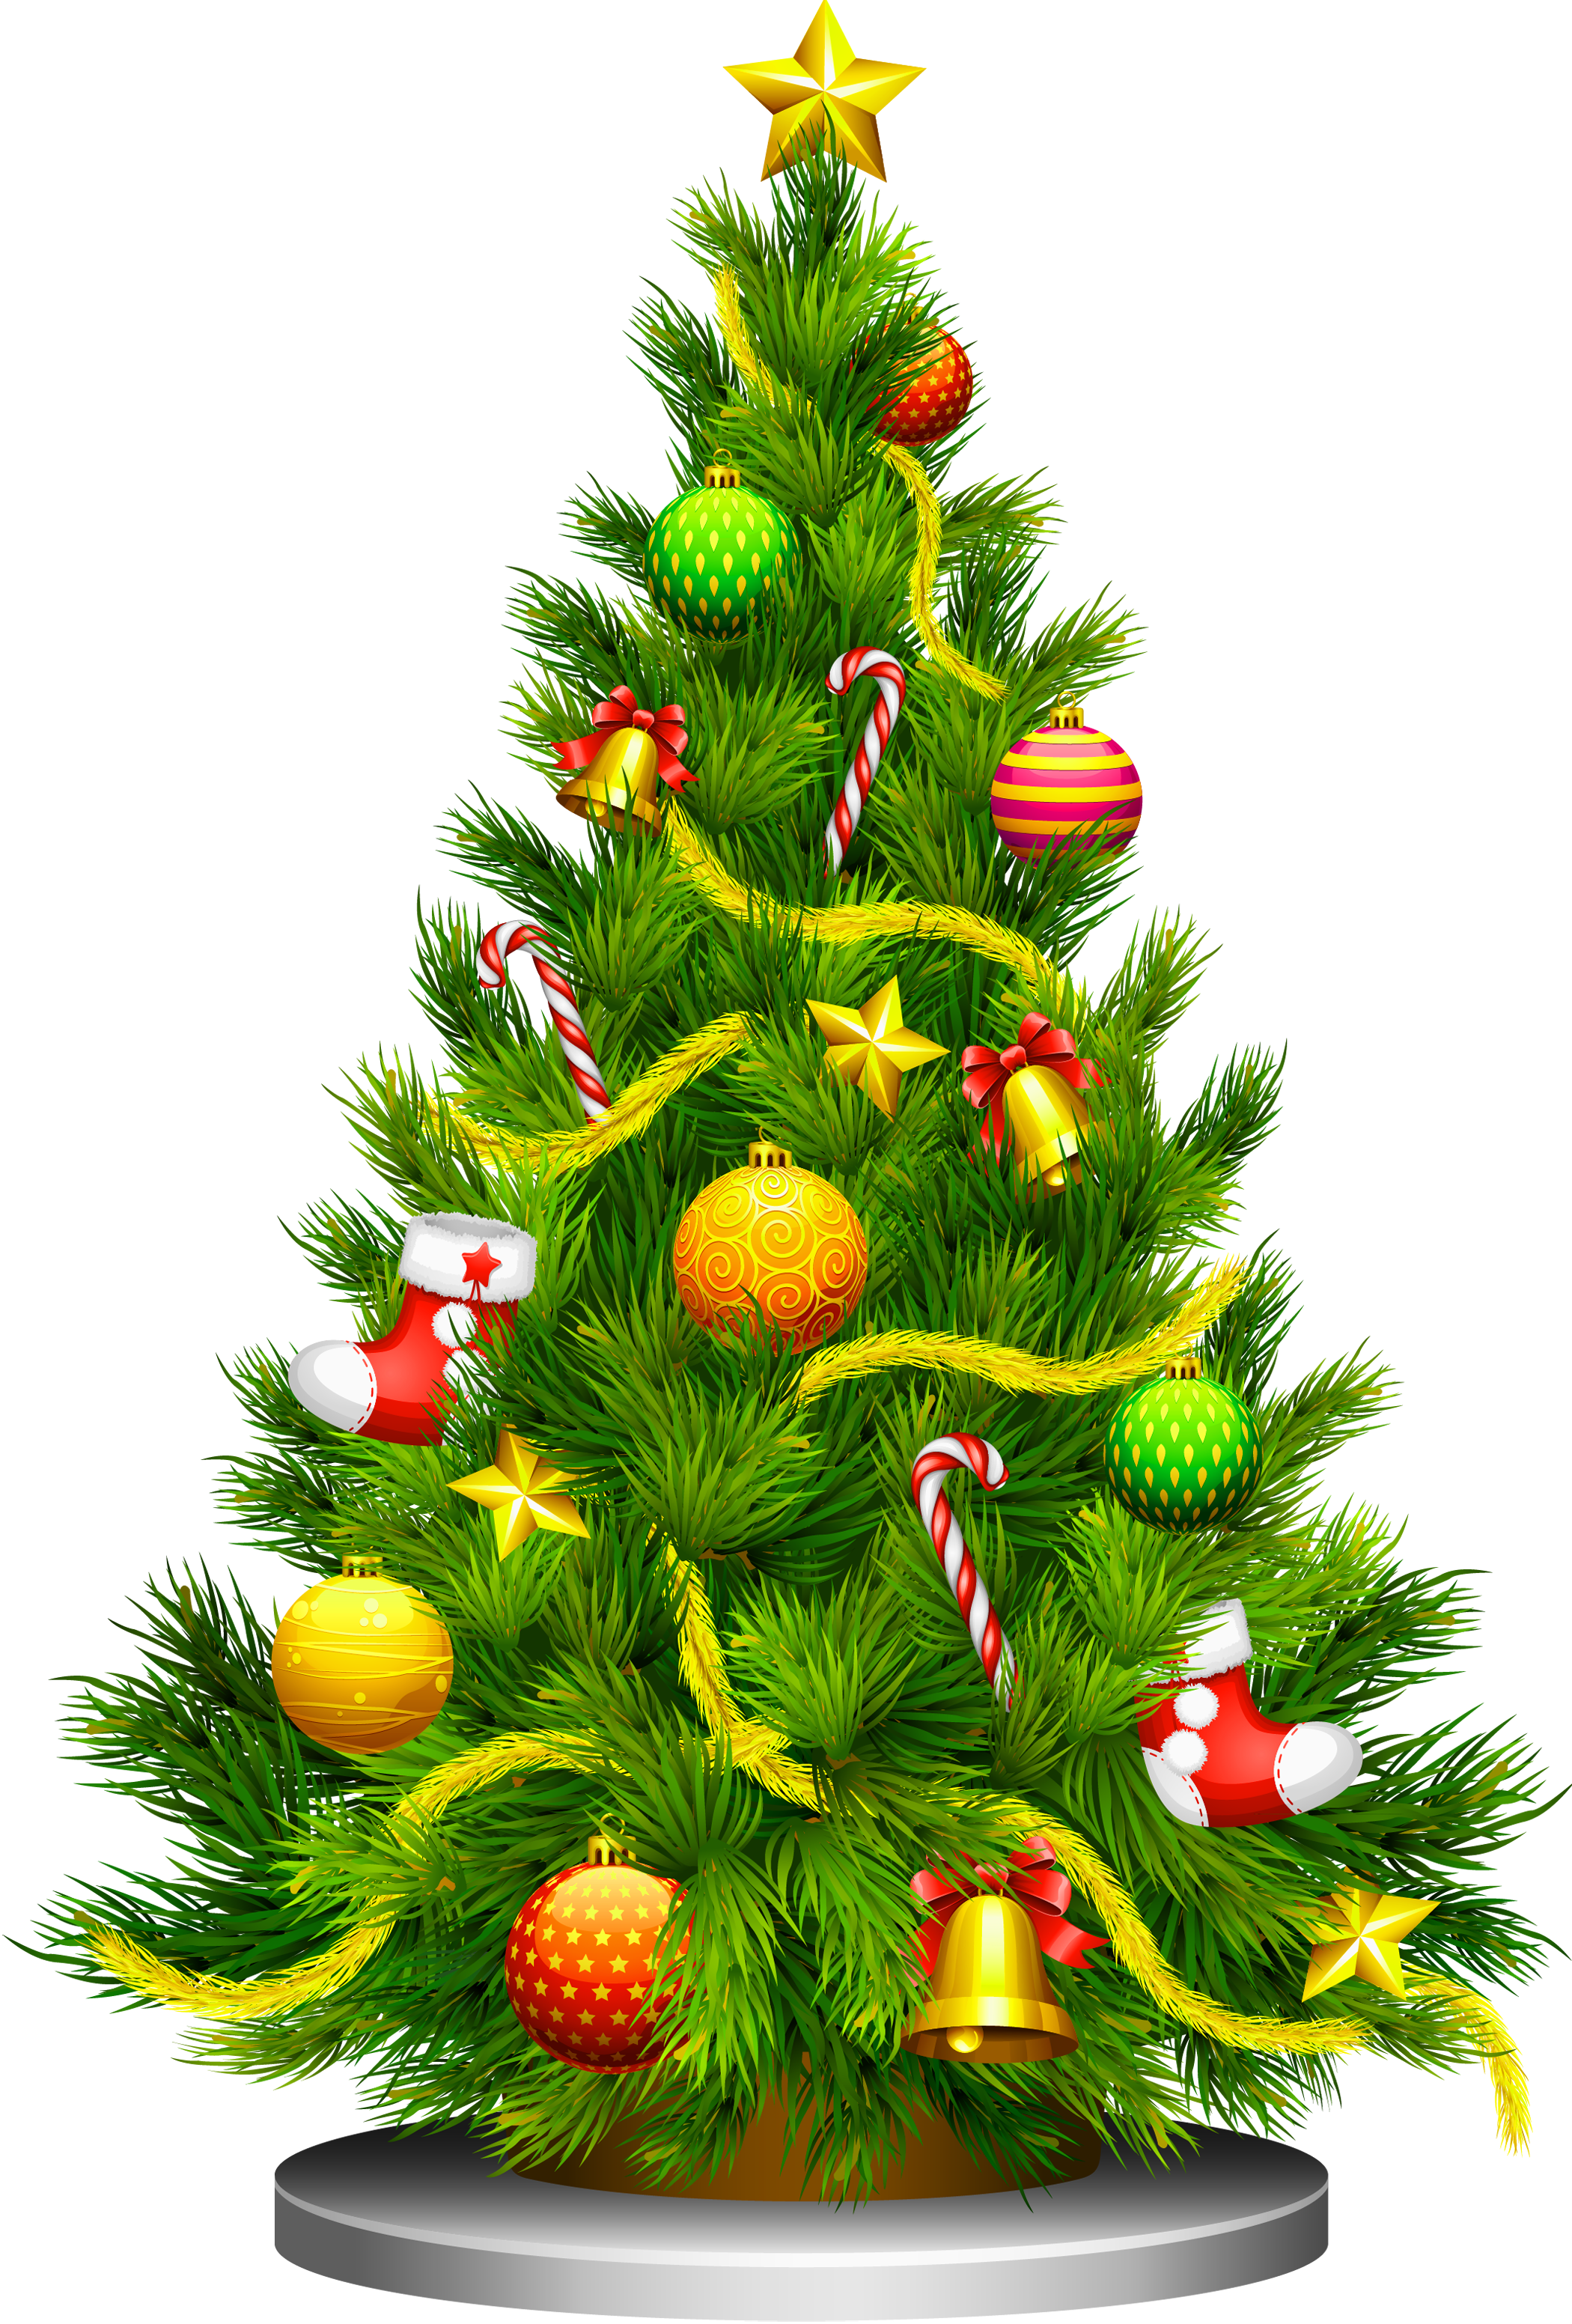 hight resolution of christmas tree free large images